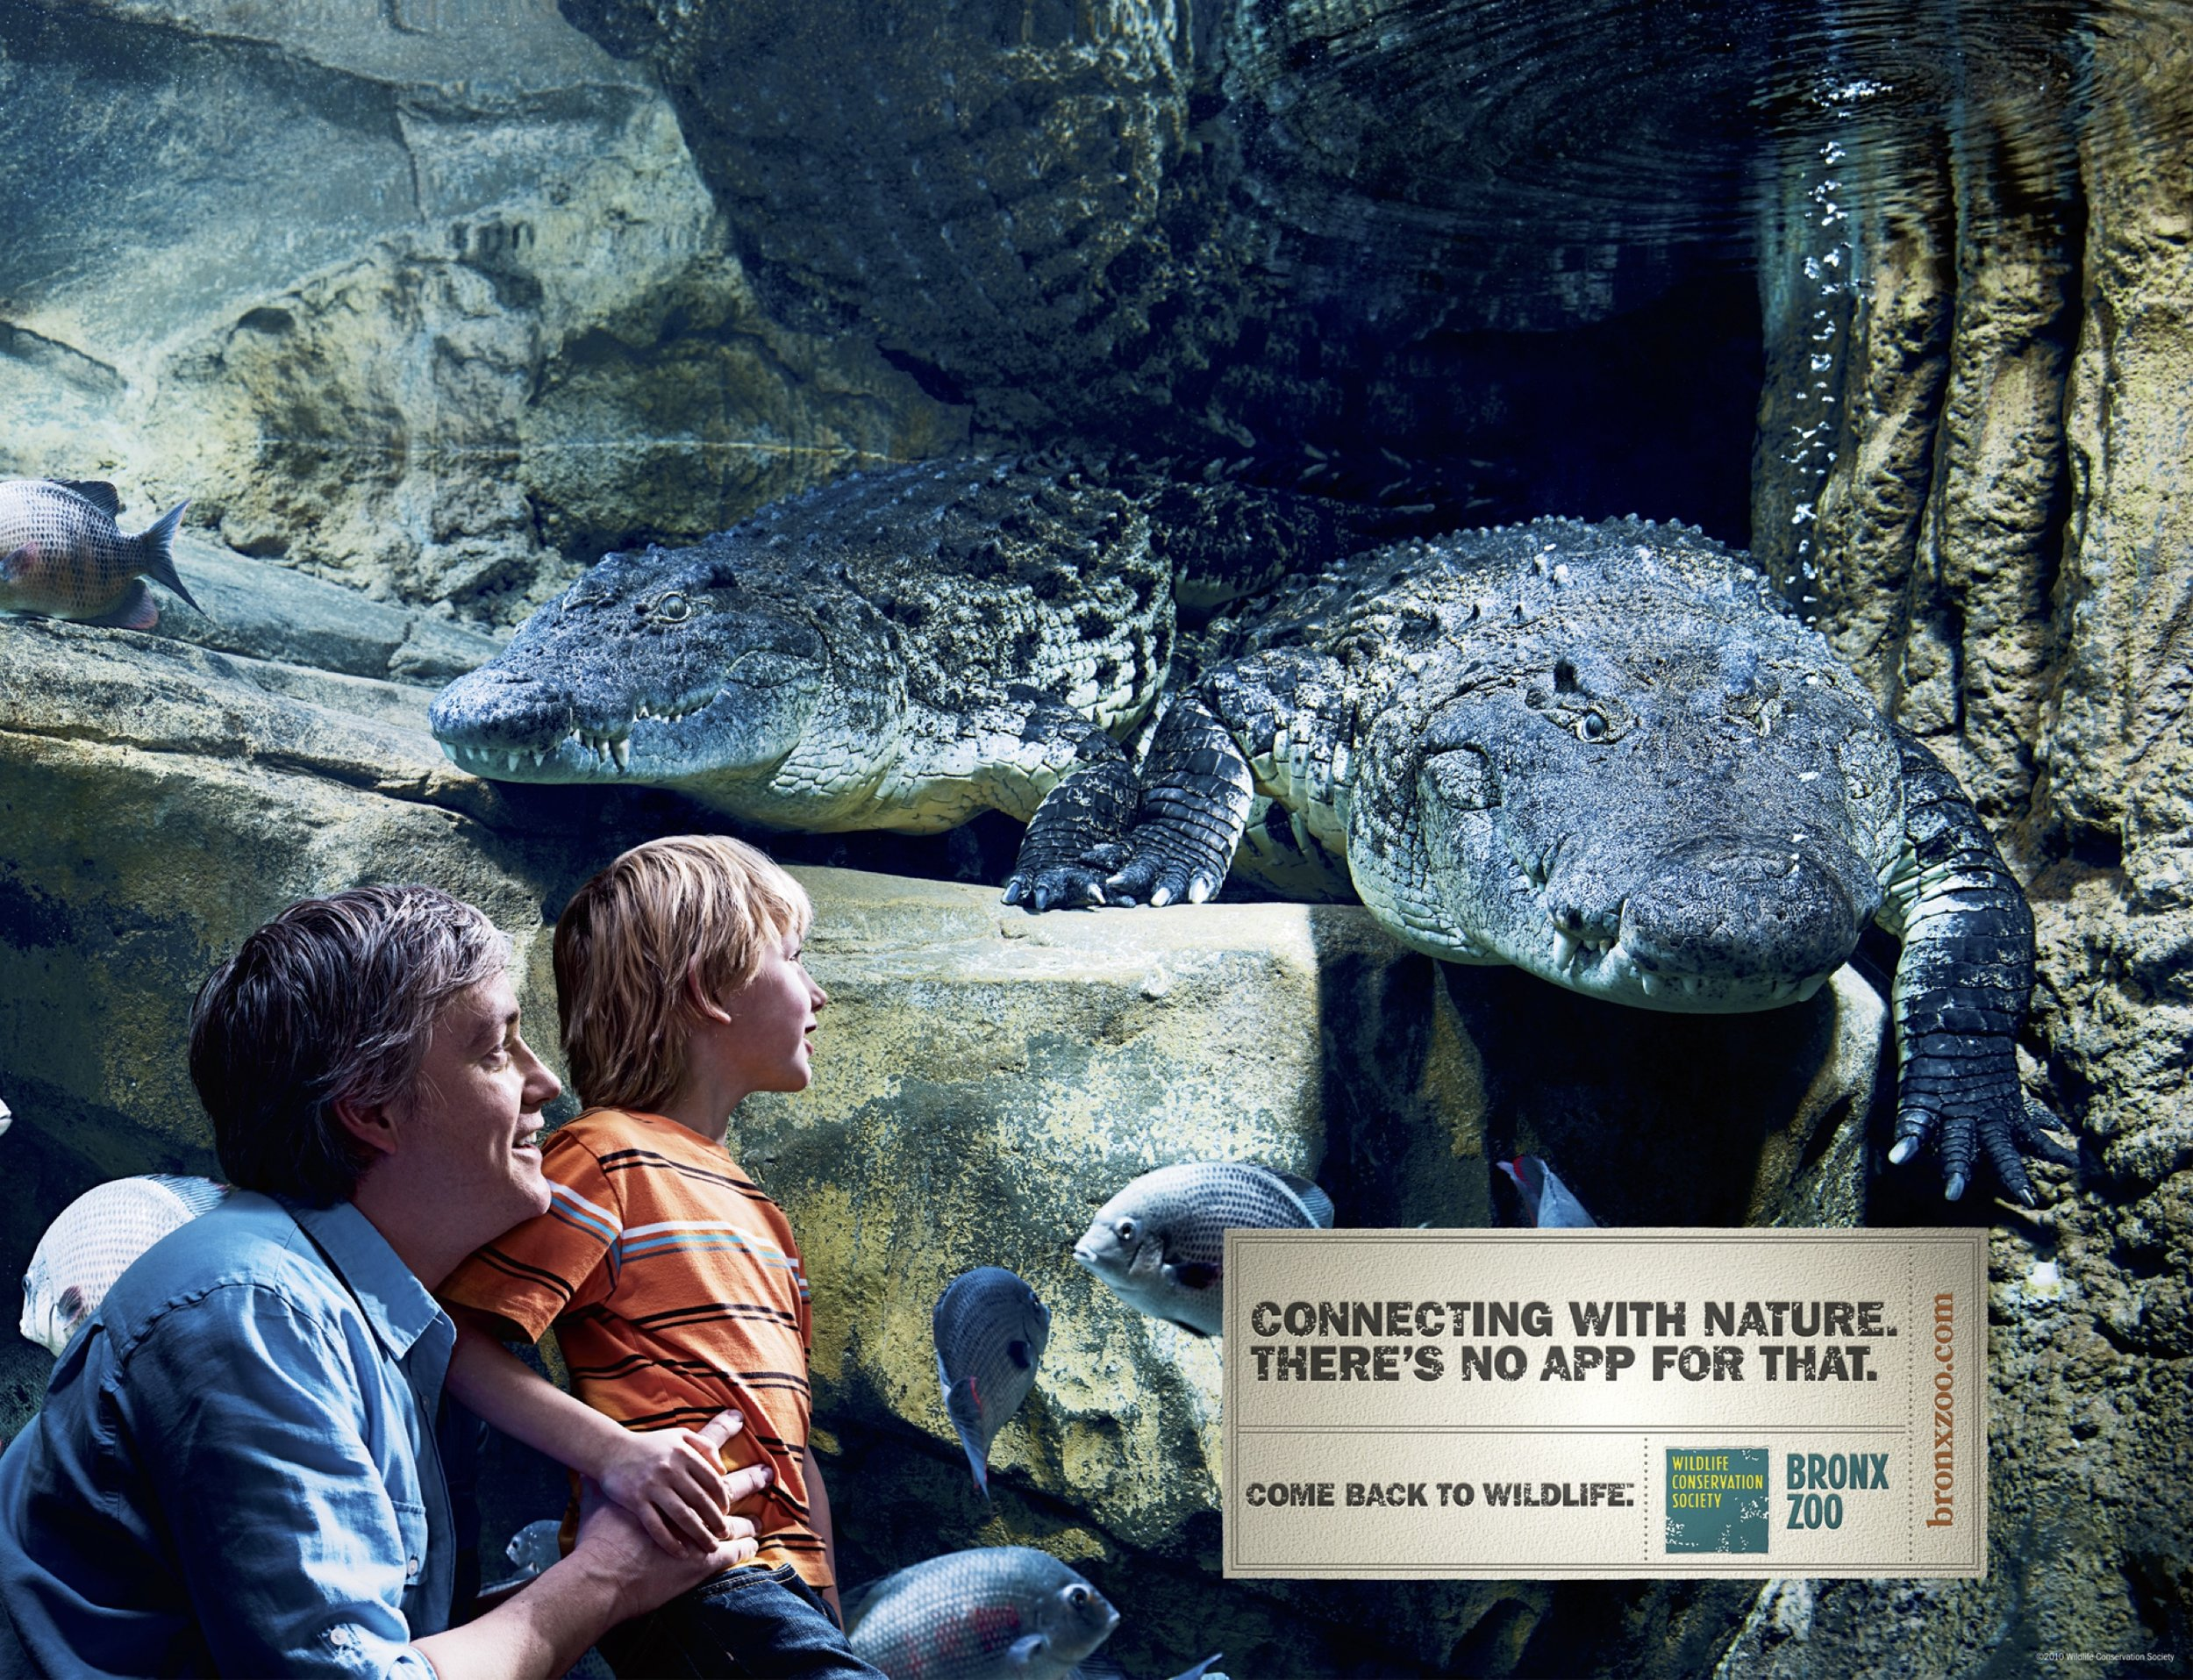 Multimedia ad campaign for Bronx Zoo by OMIH creative agency